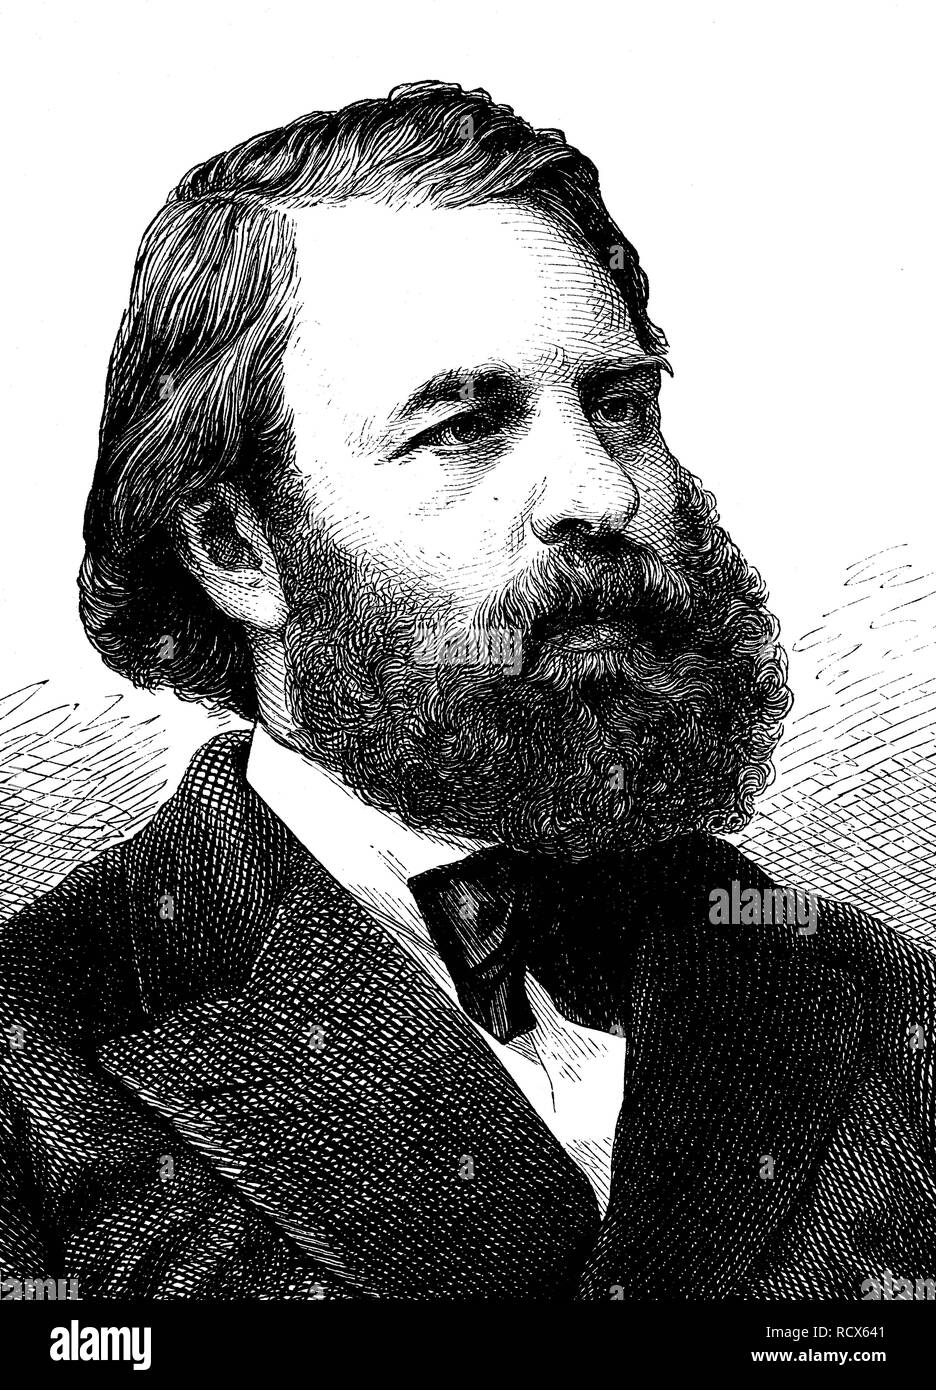 Joseph Joachim, 1831 - 1907, Austro-Hungarian violinist, conductor and composer, wood engraving, 1880 - Stock Image